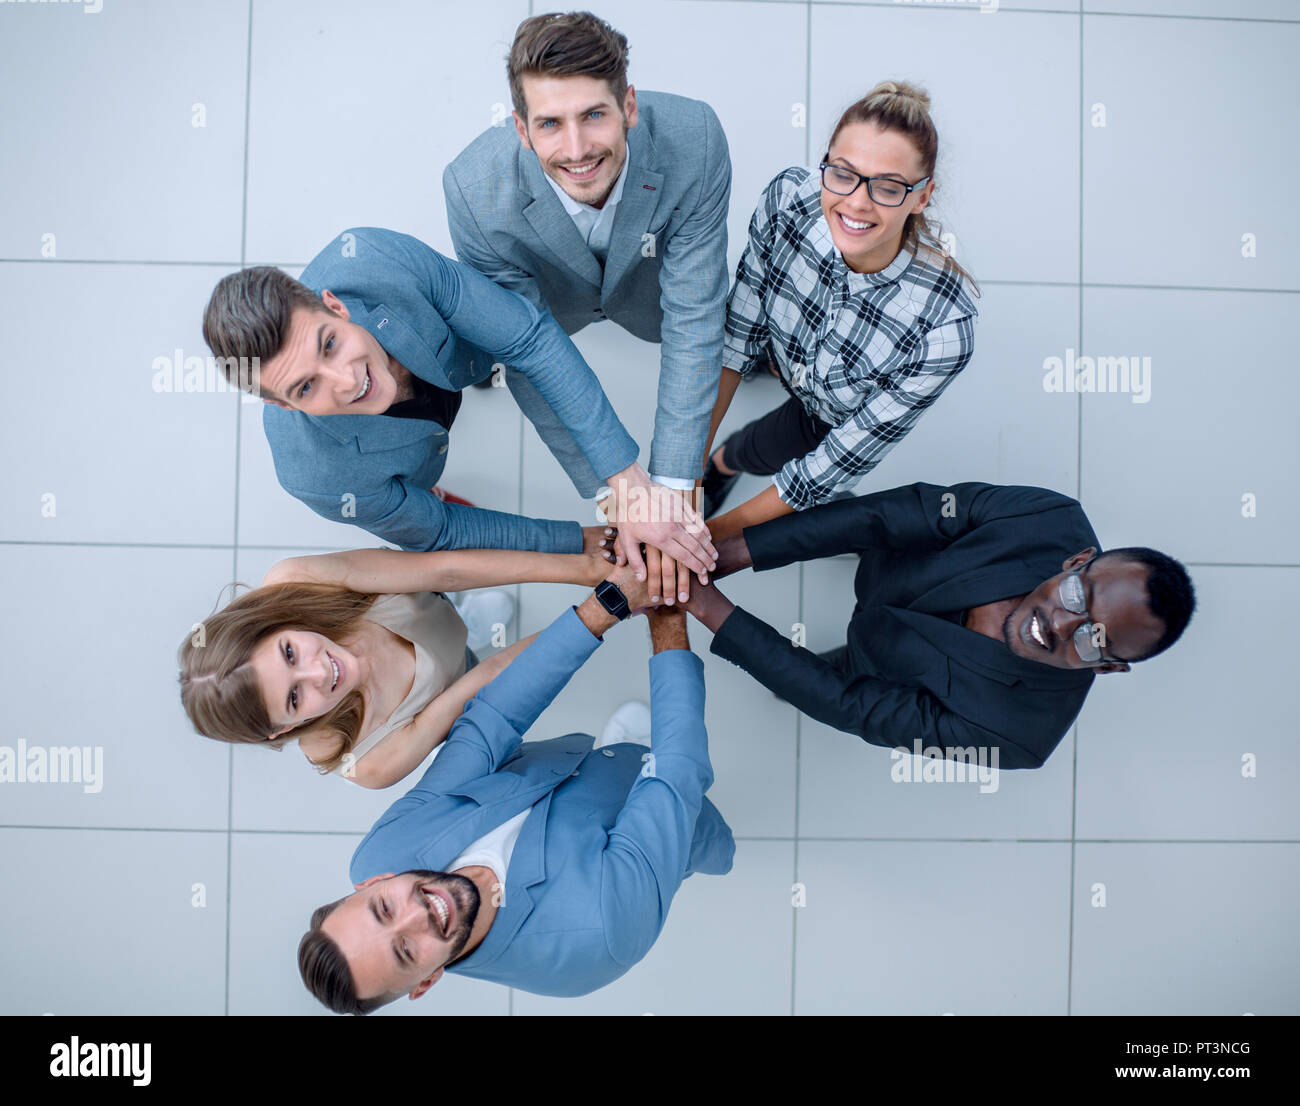 Its a dream team! Top high angle view Full length body, size and high angle view portrait of carefree, trandy hipster folded hands stacked on top of e - Stock Image